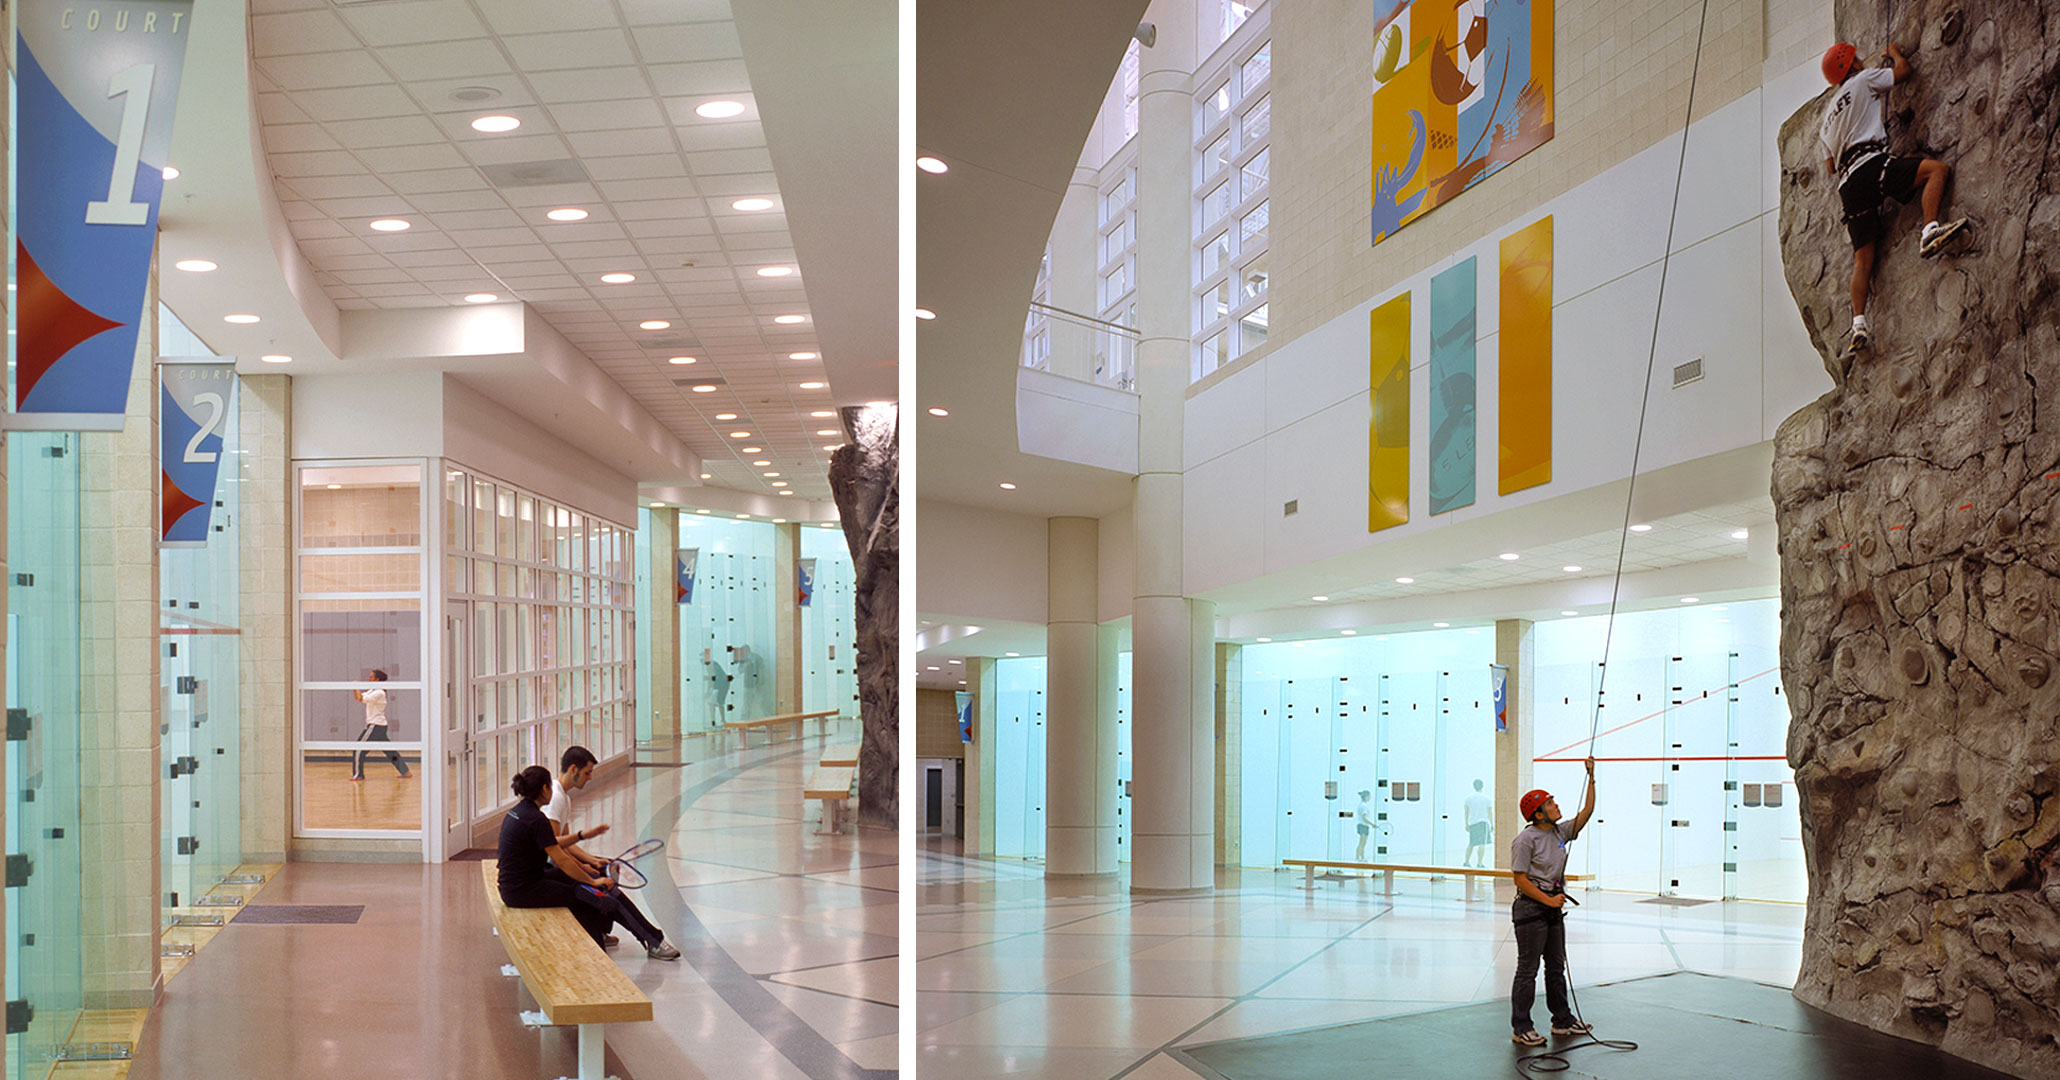 University of South Carolina worked with Boudreaux architects to design a climbing rock wall.